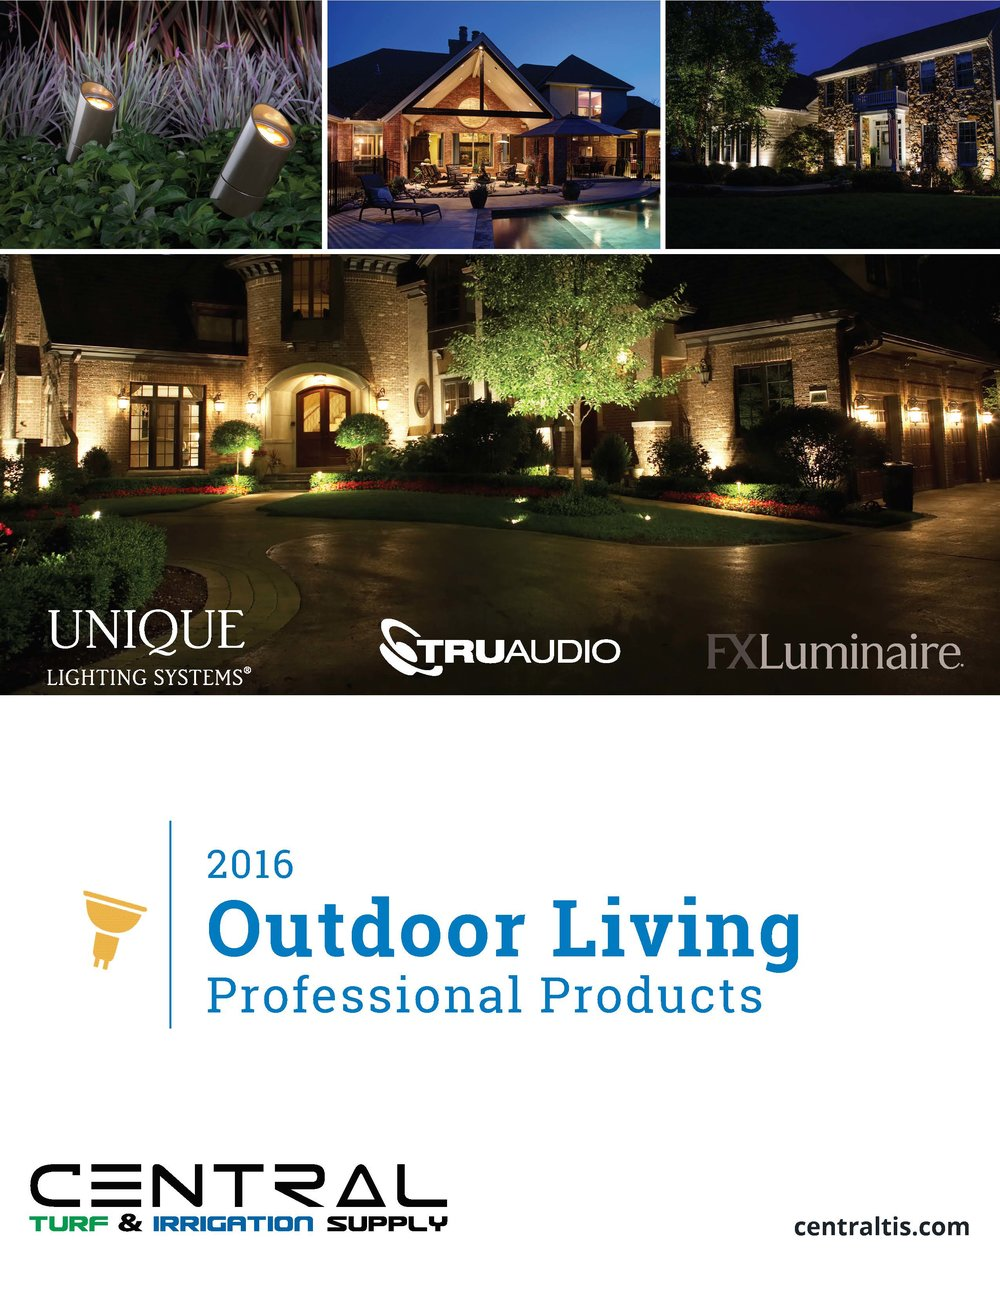 2016 Outdoor Living Brochure_Page_1.jpg